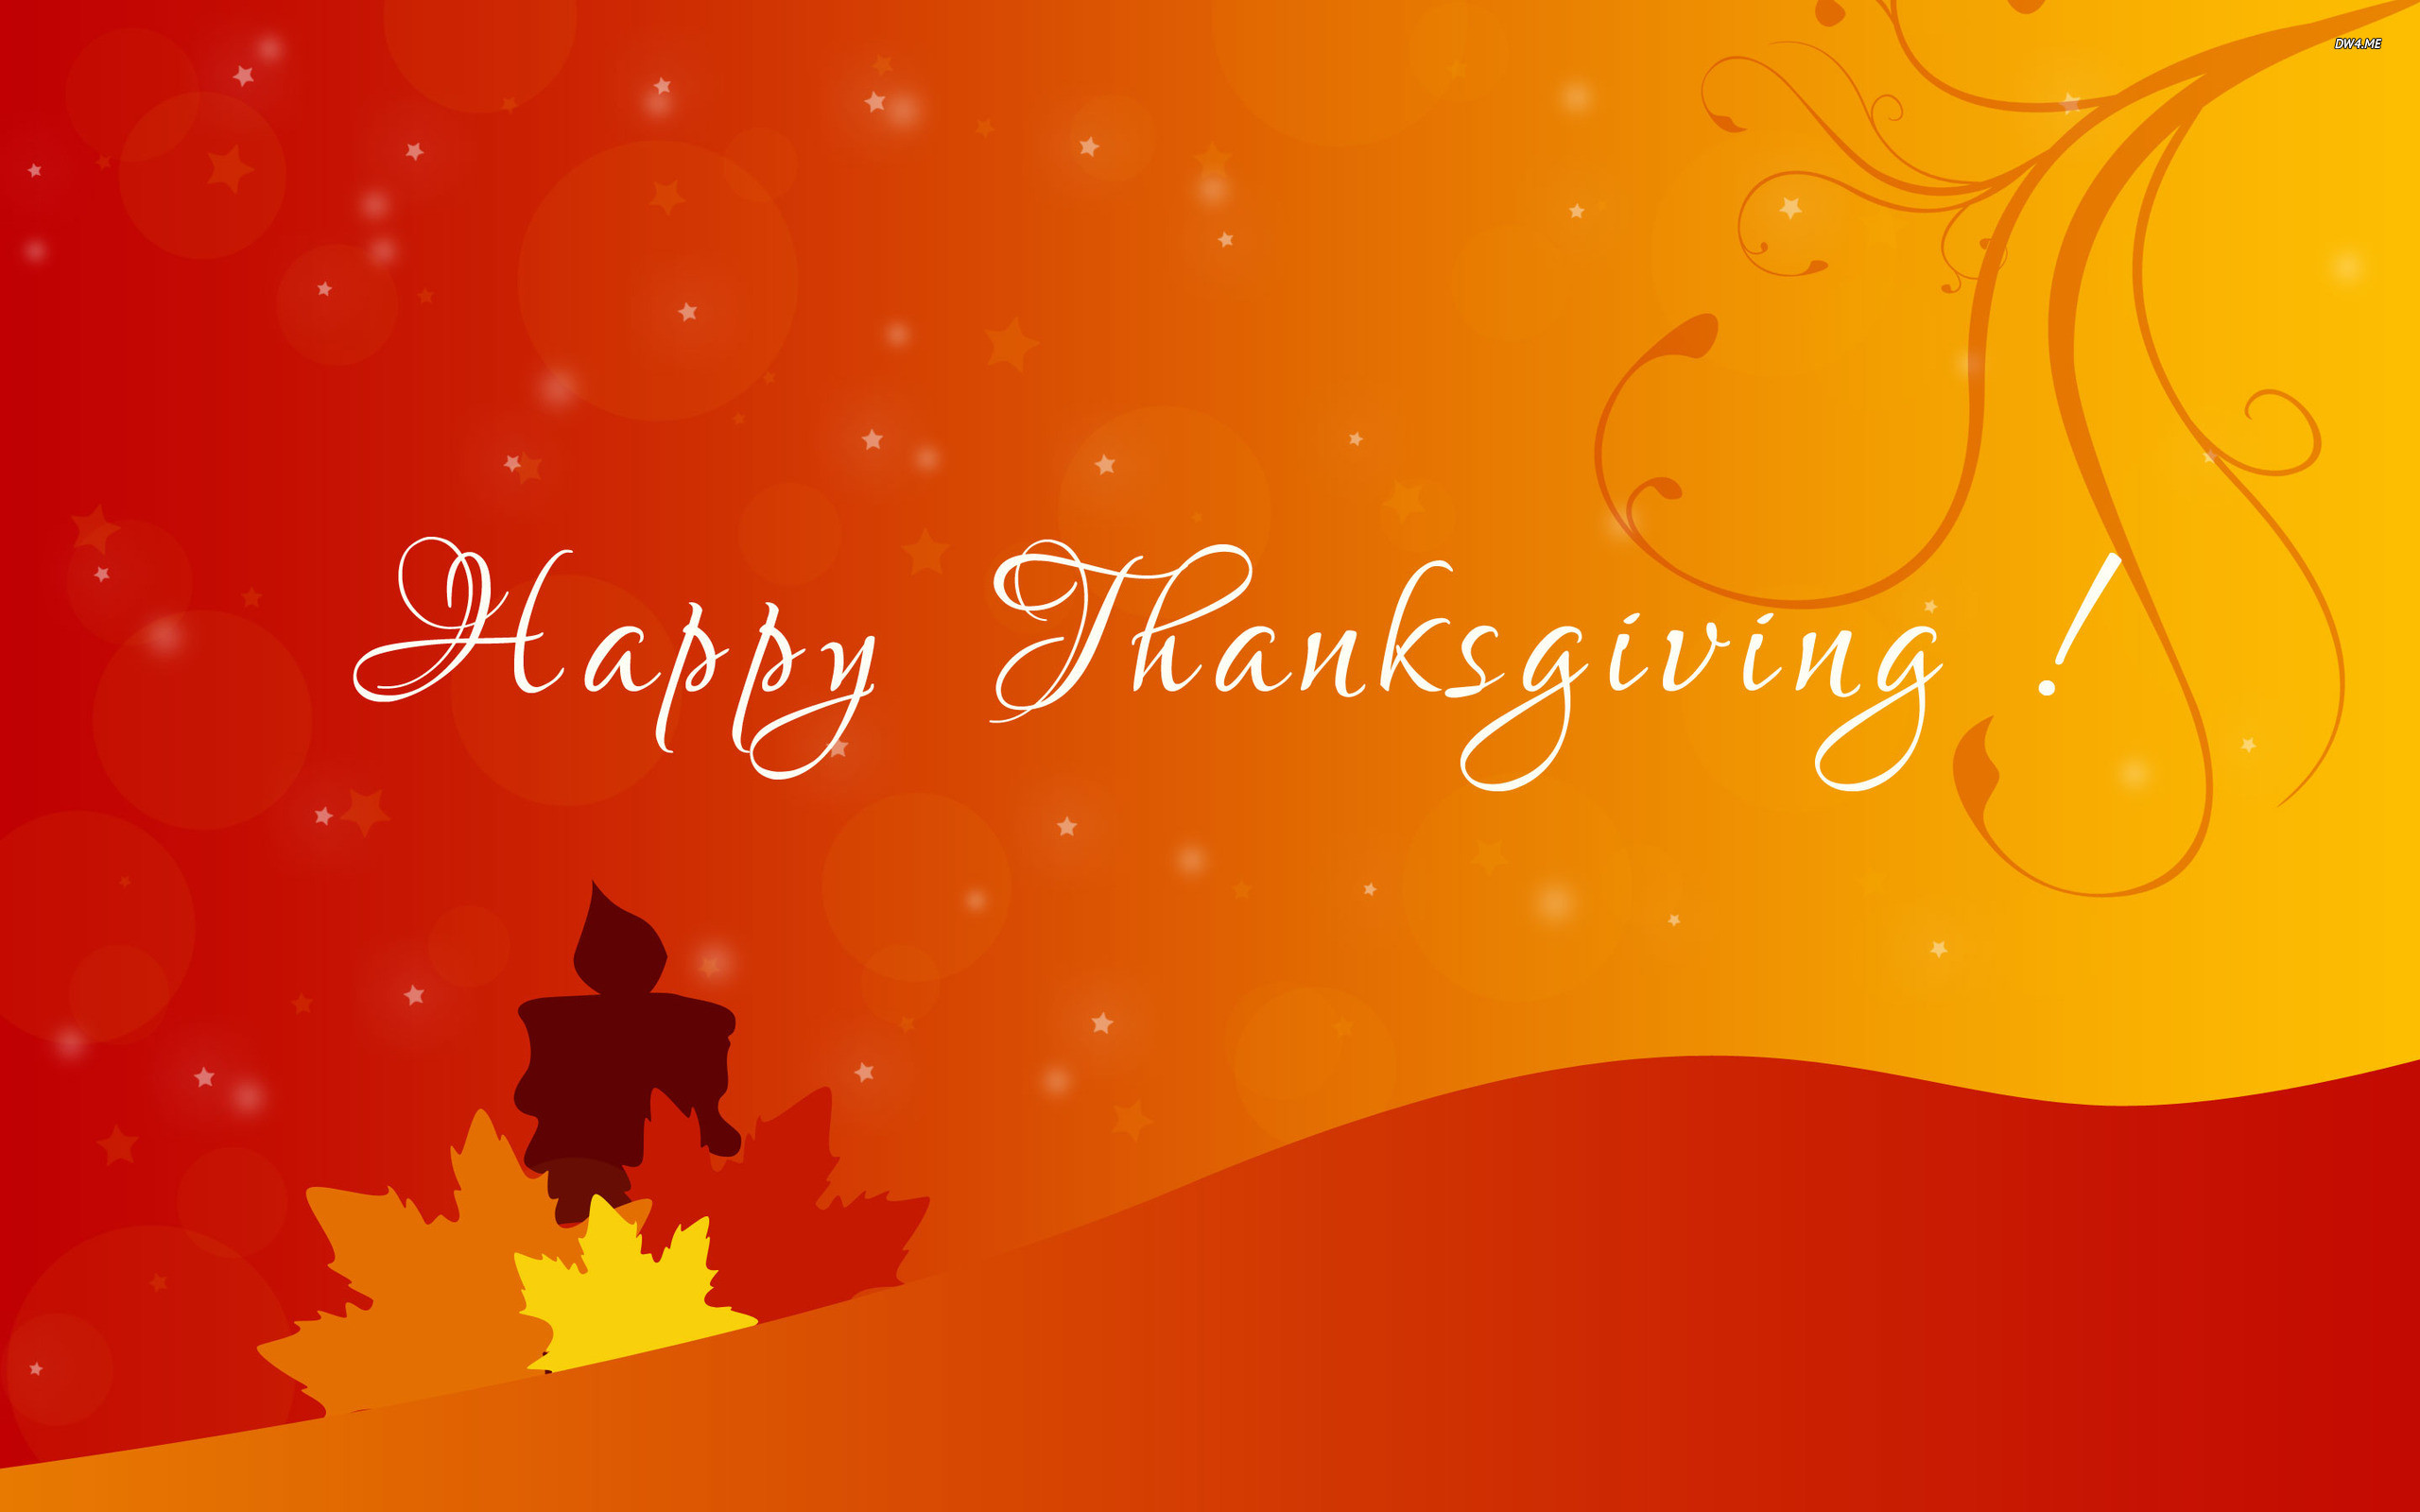 Happy Thanksgiving wallpaper Holiday wallpapers #1858 #4006